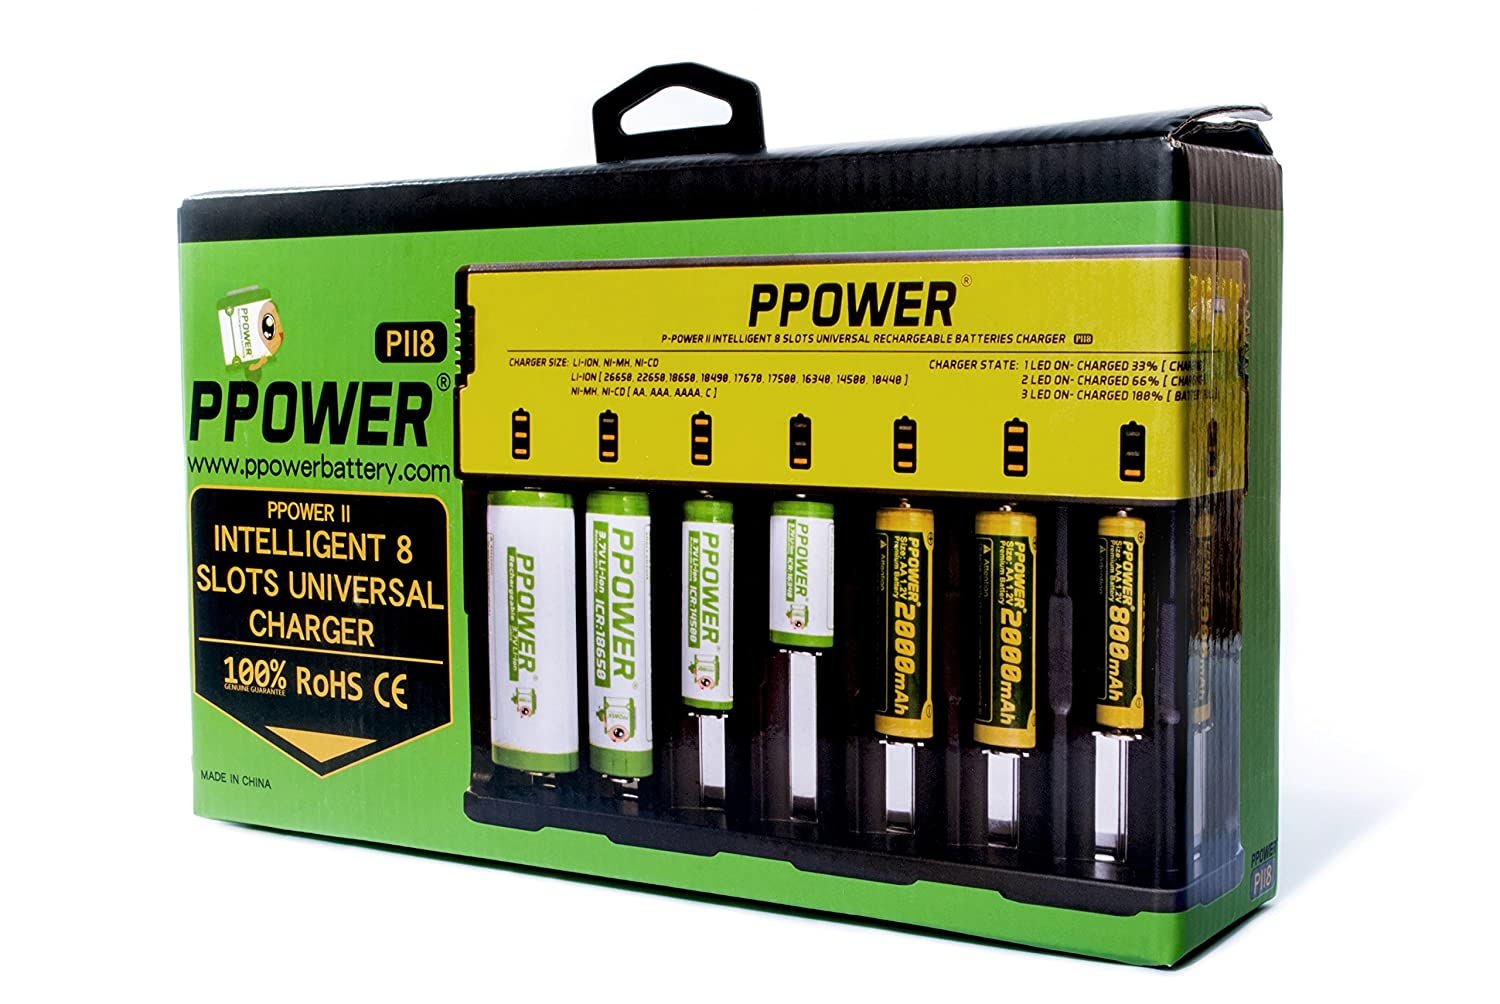 Ppower Intelligent 8 Slots Battery Charger For Li Ion Nicad By Ic Ca3140e Electronics